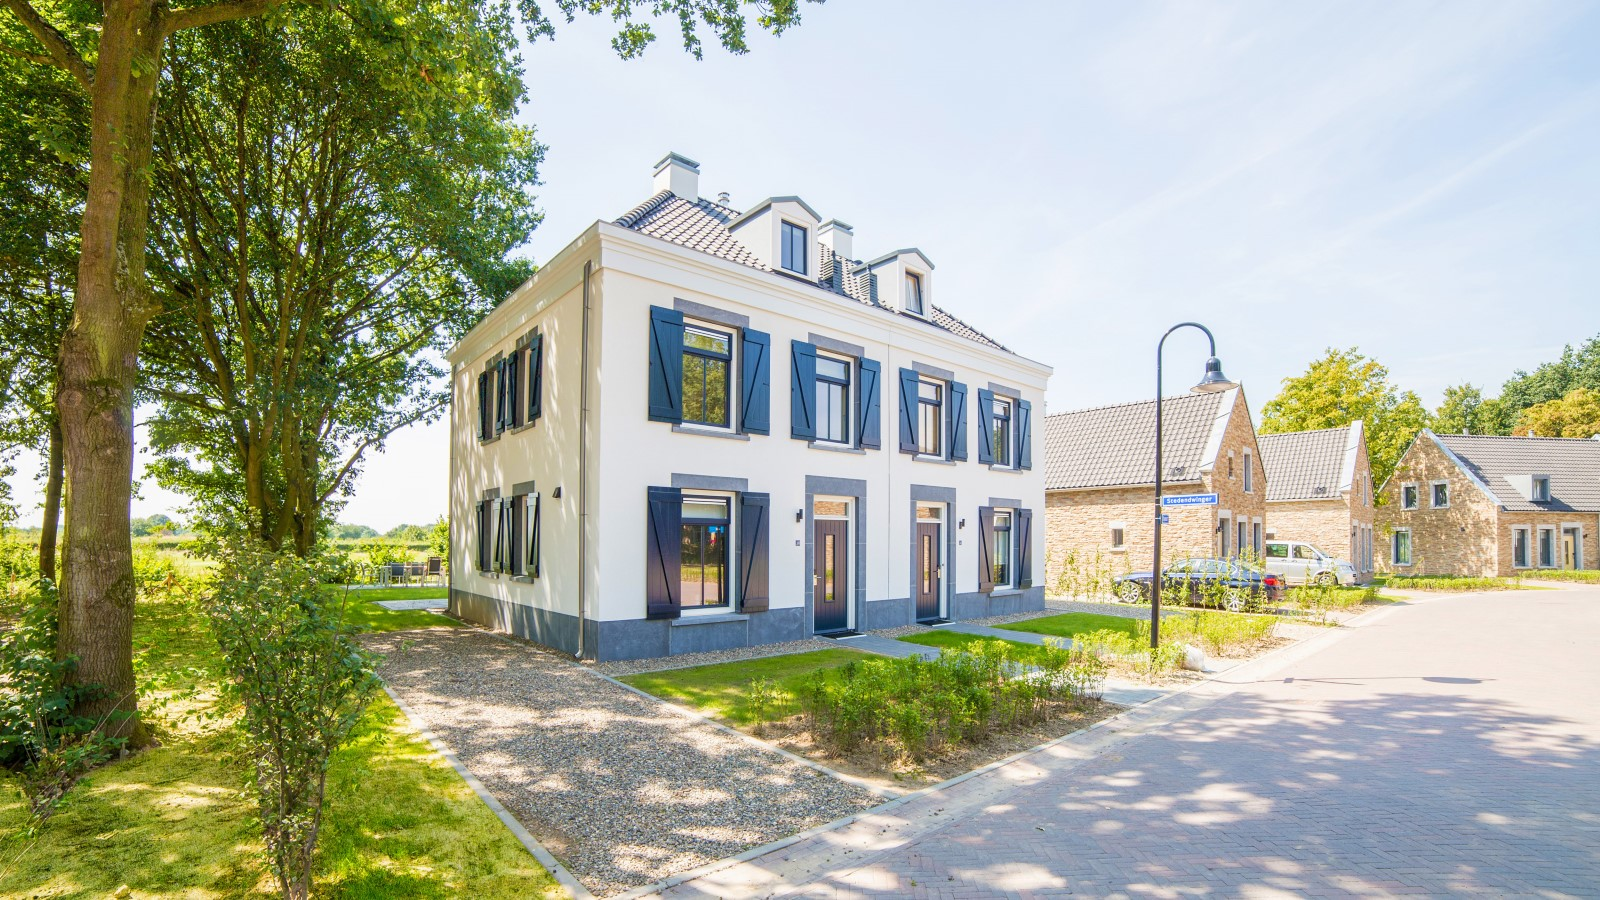 Herenhuis luxury - 4 bedrooms